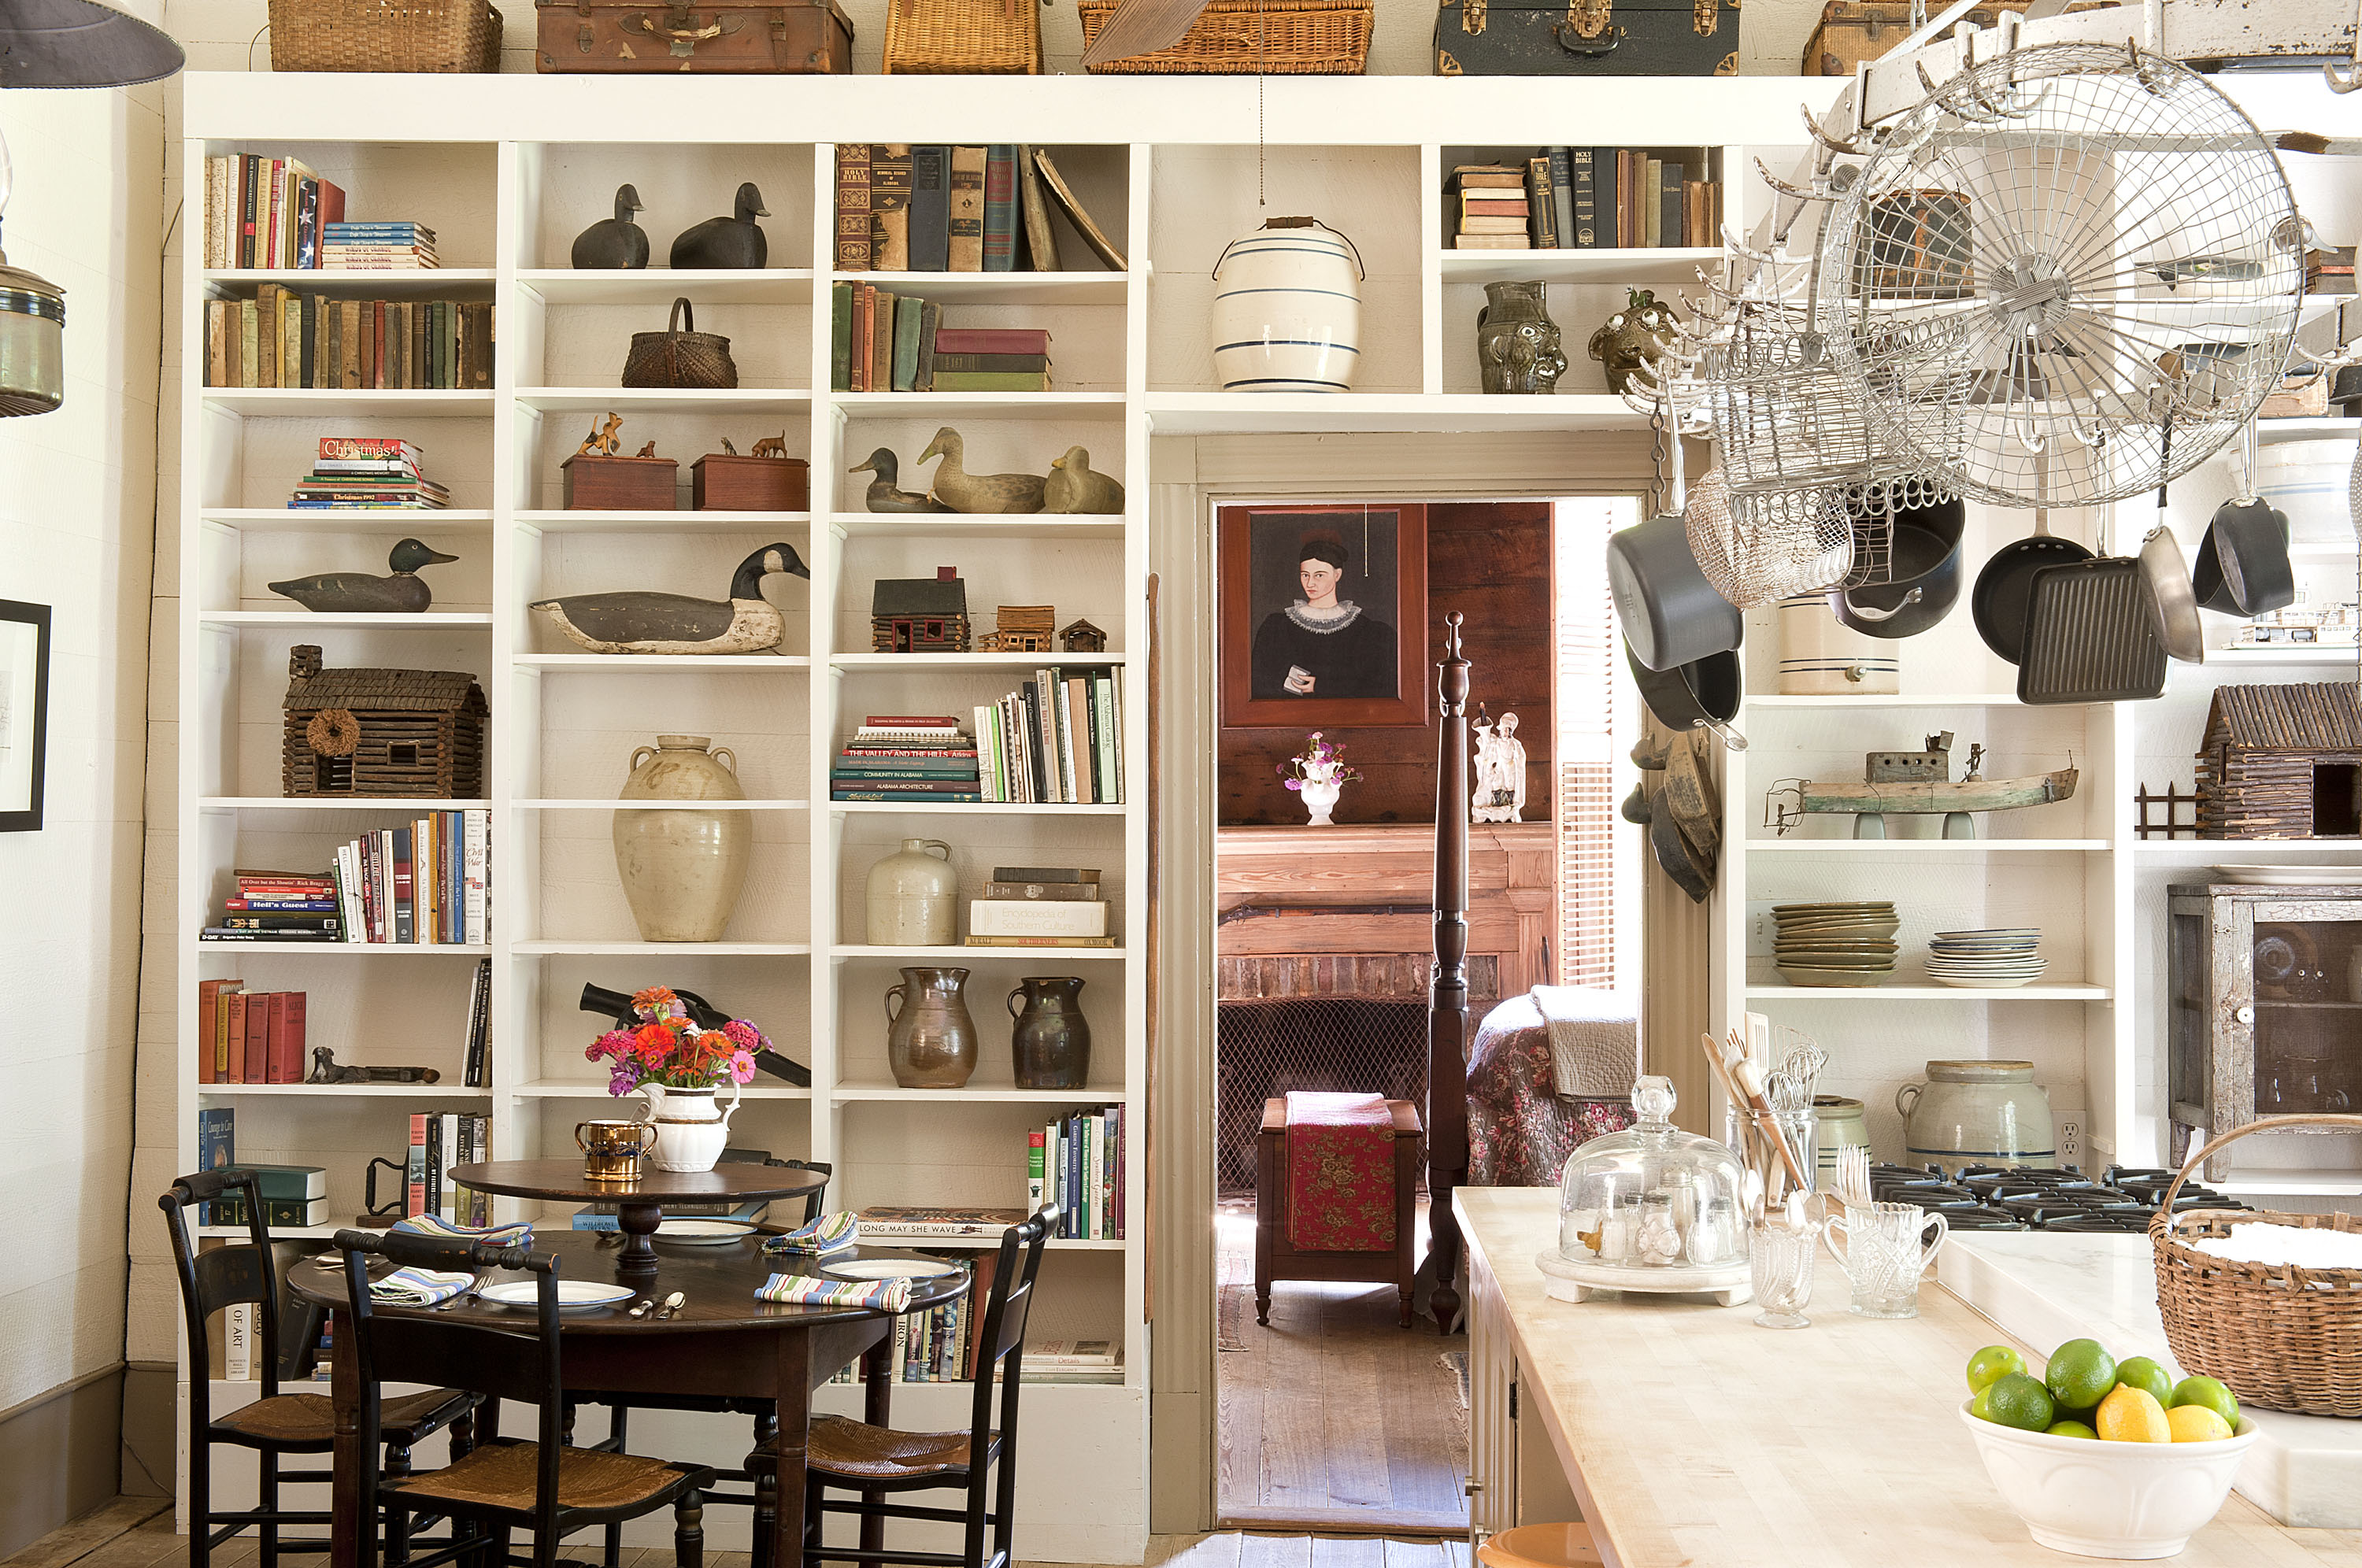 How To Decorate With Antiques, Heirlooms